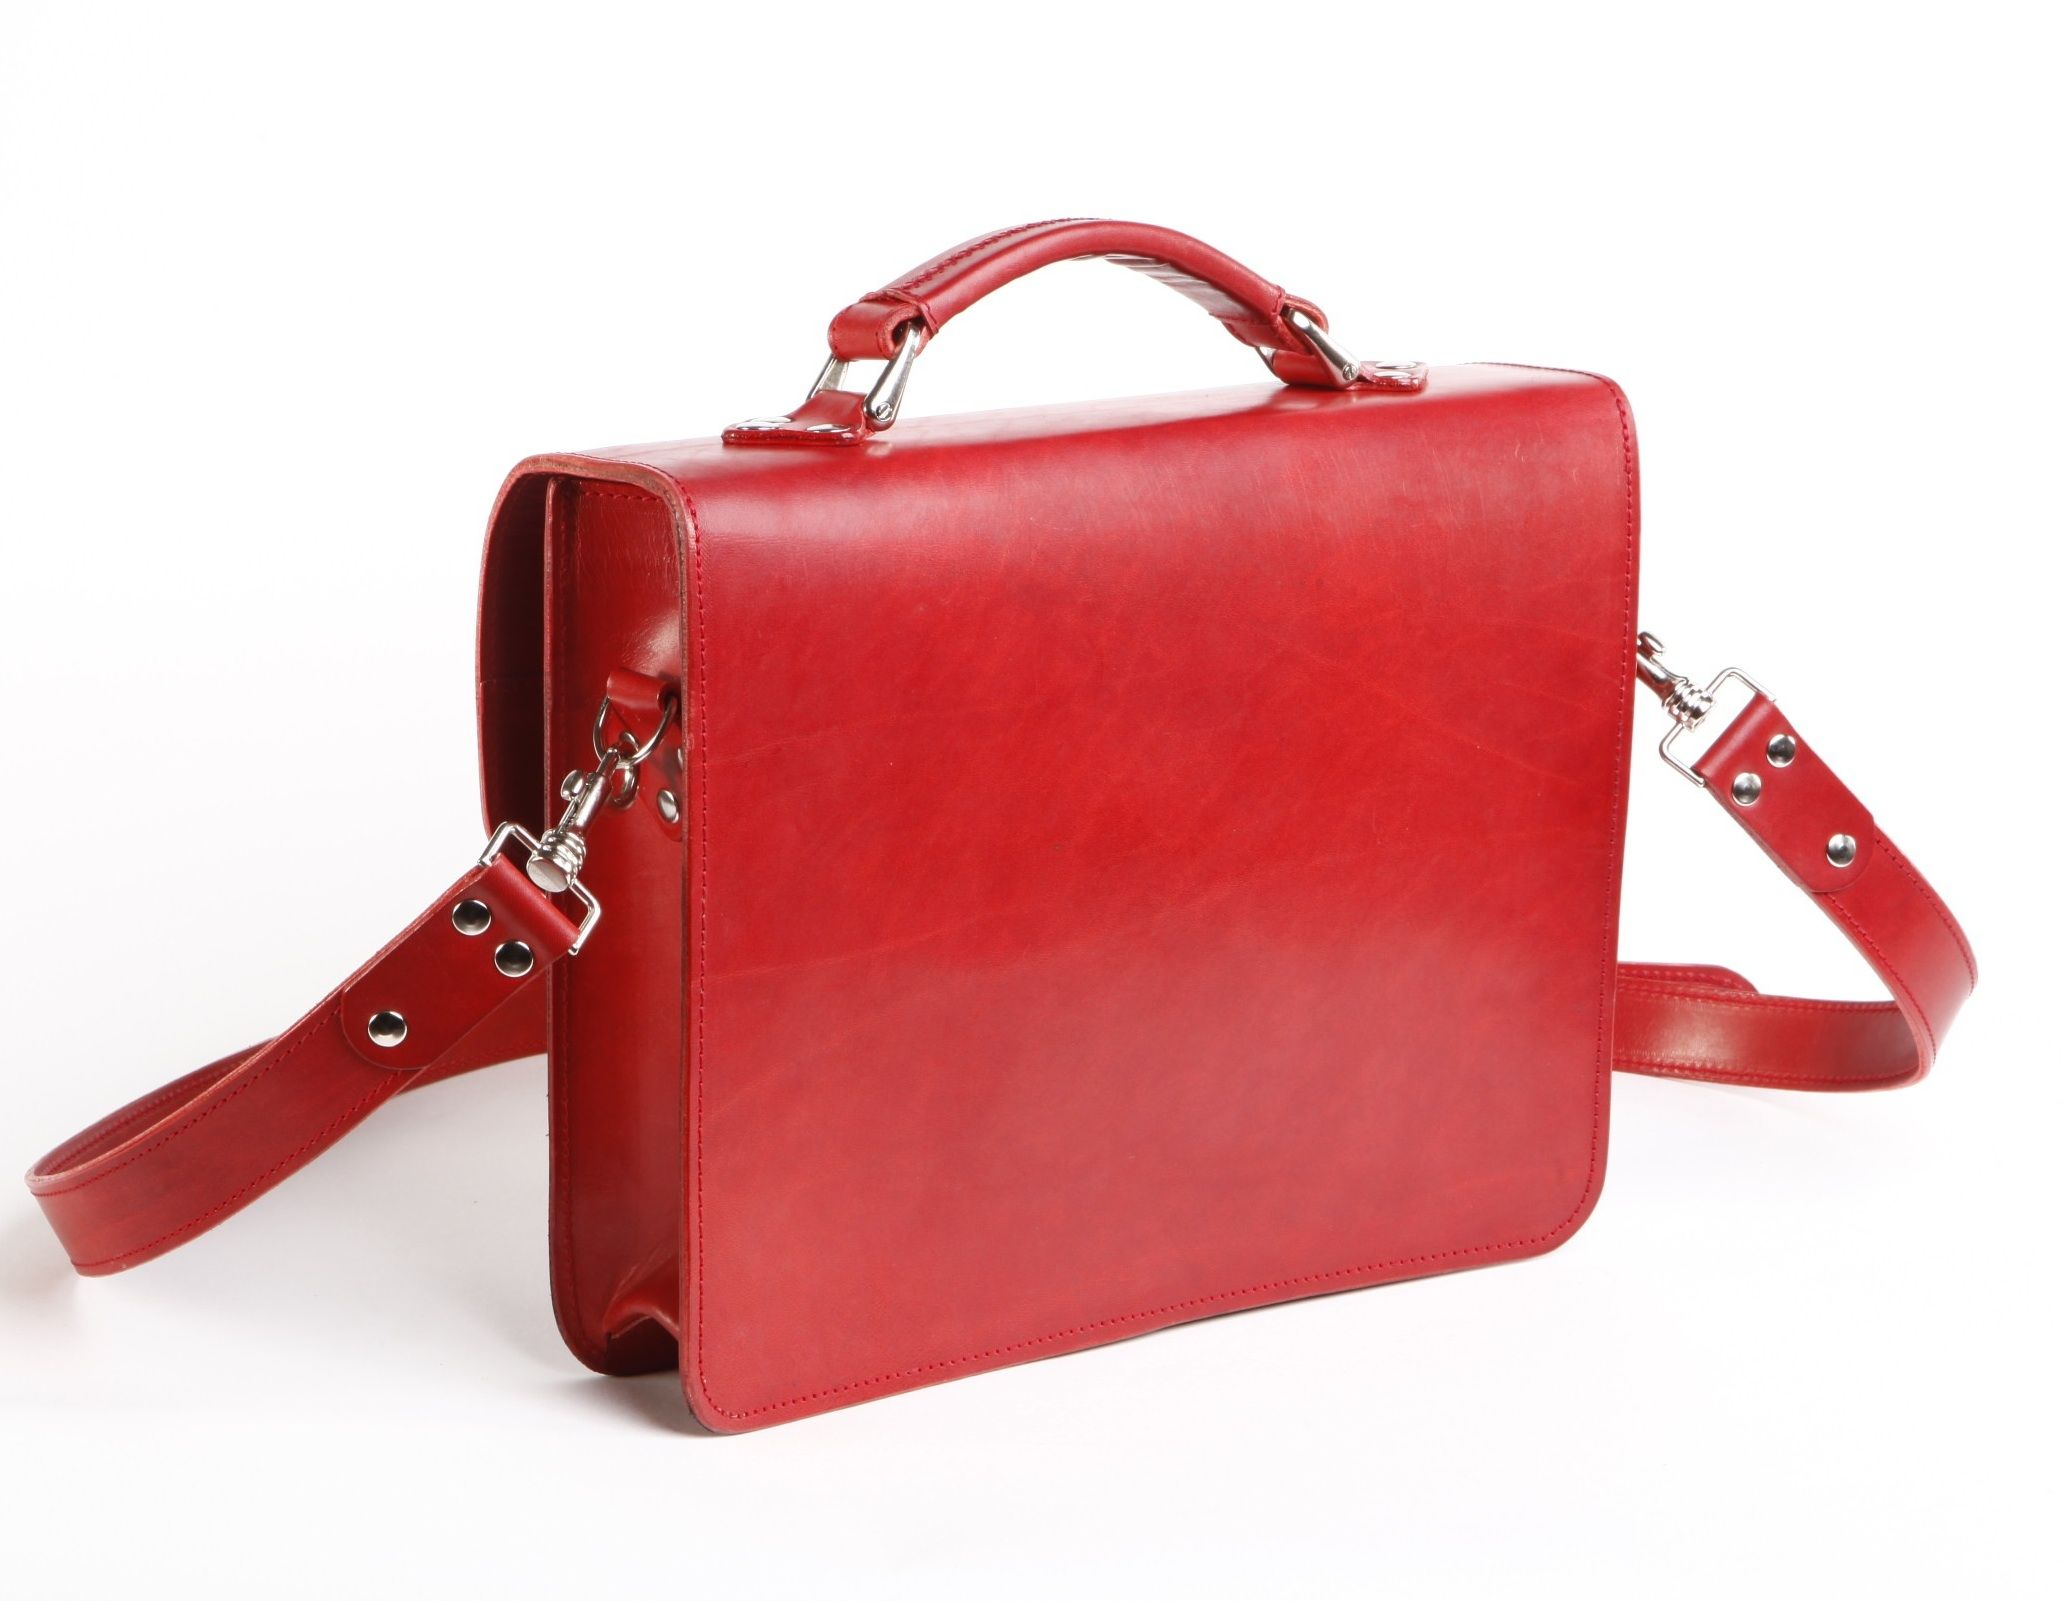 back of our #red #leather #bag made by #artisans in our leather #workshop in #Prague www.romantlusty.com